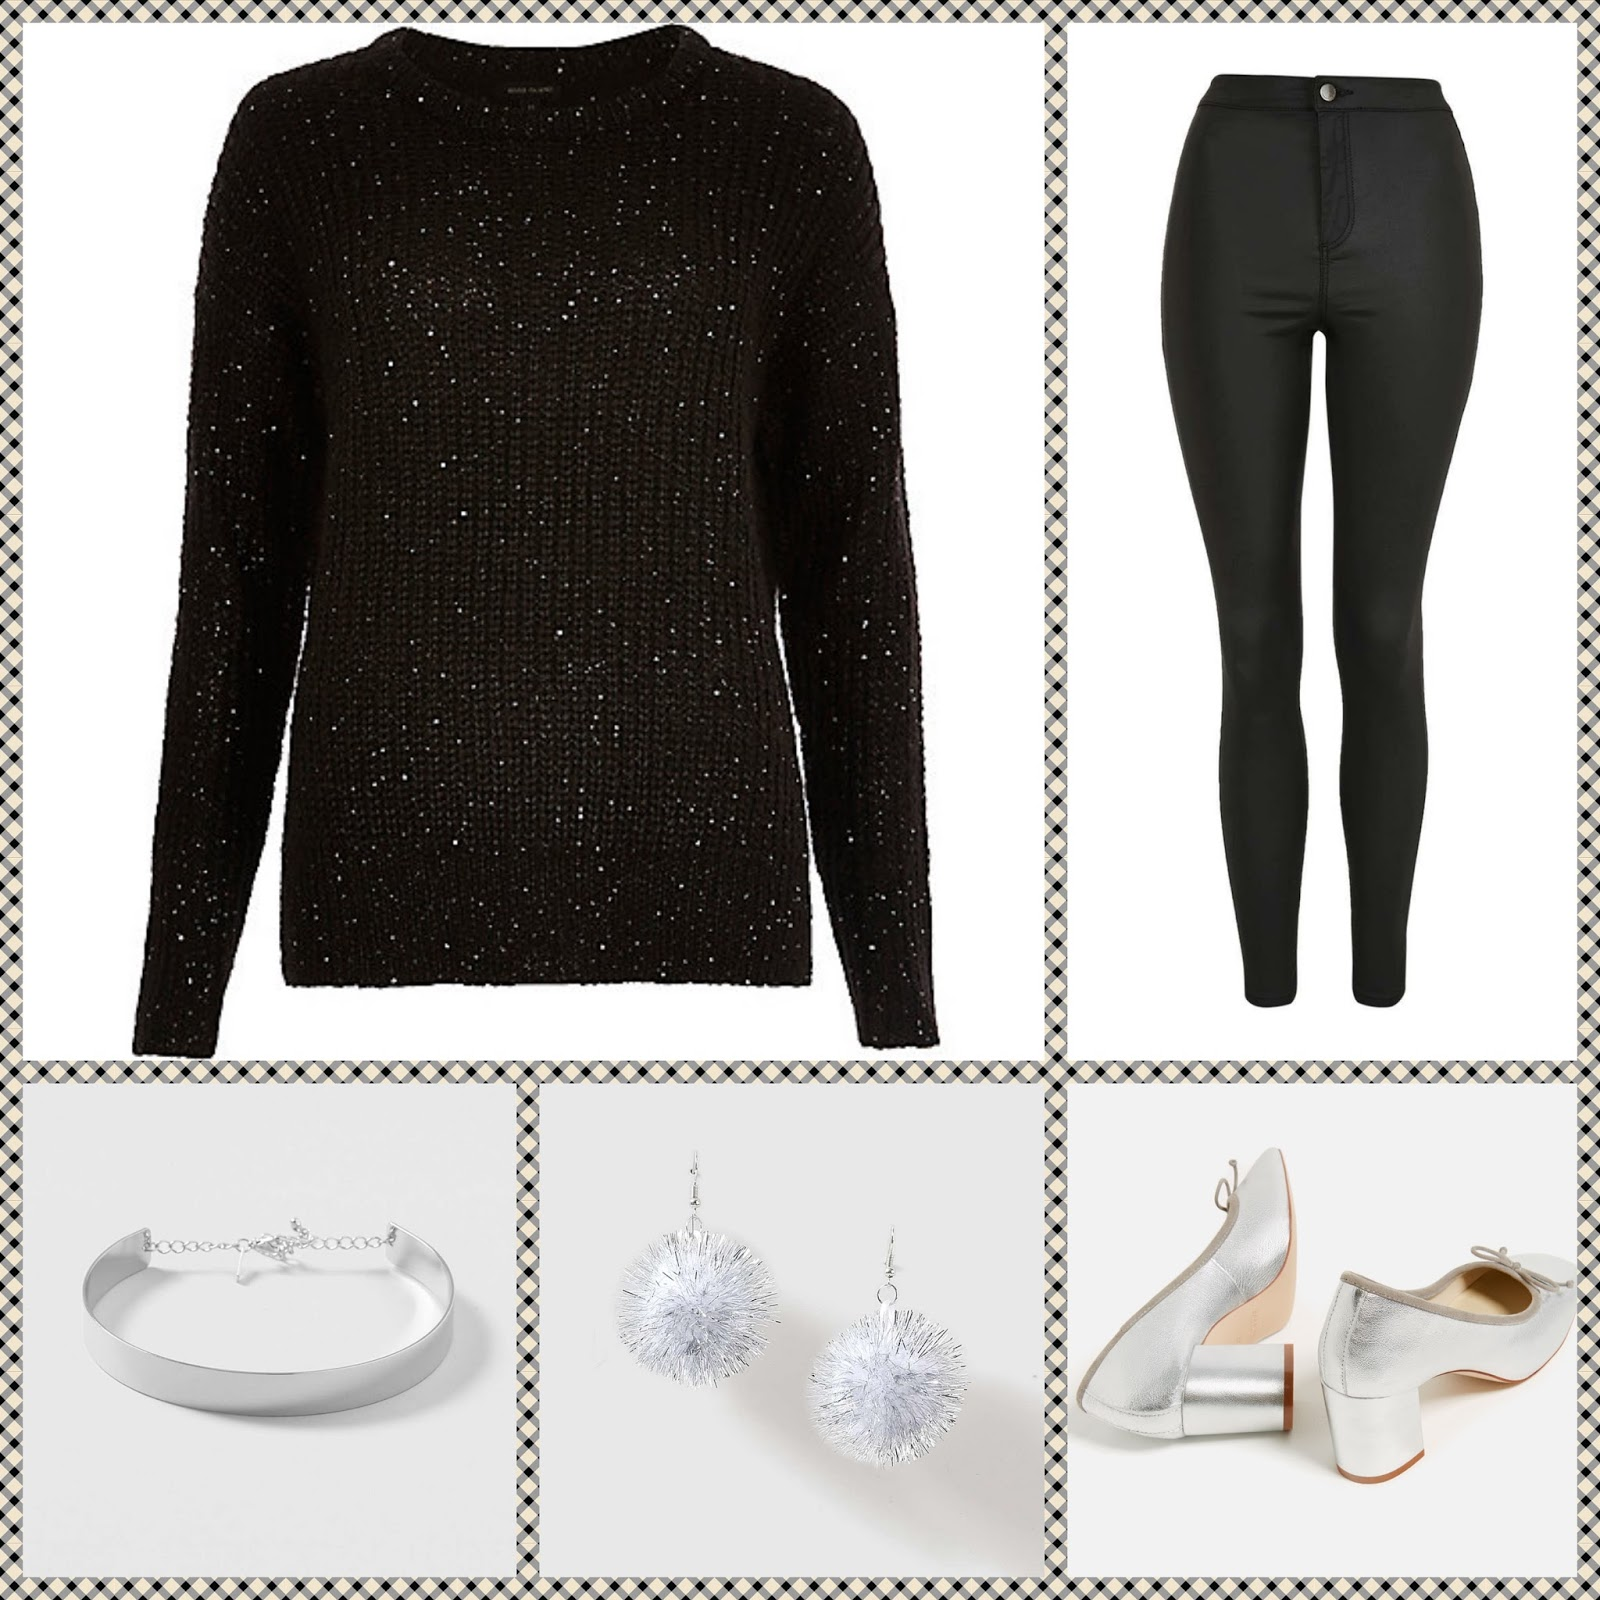 21st December - Christmas Day Outfits**   Its All Jadey